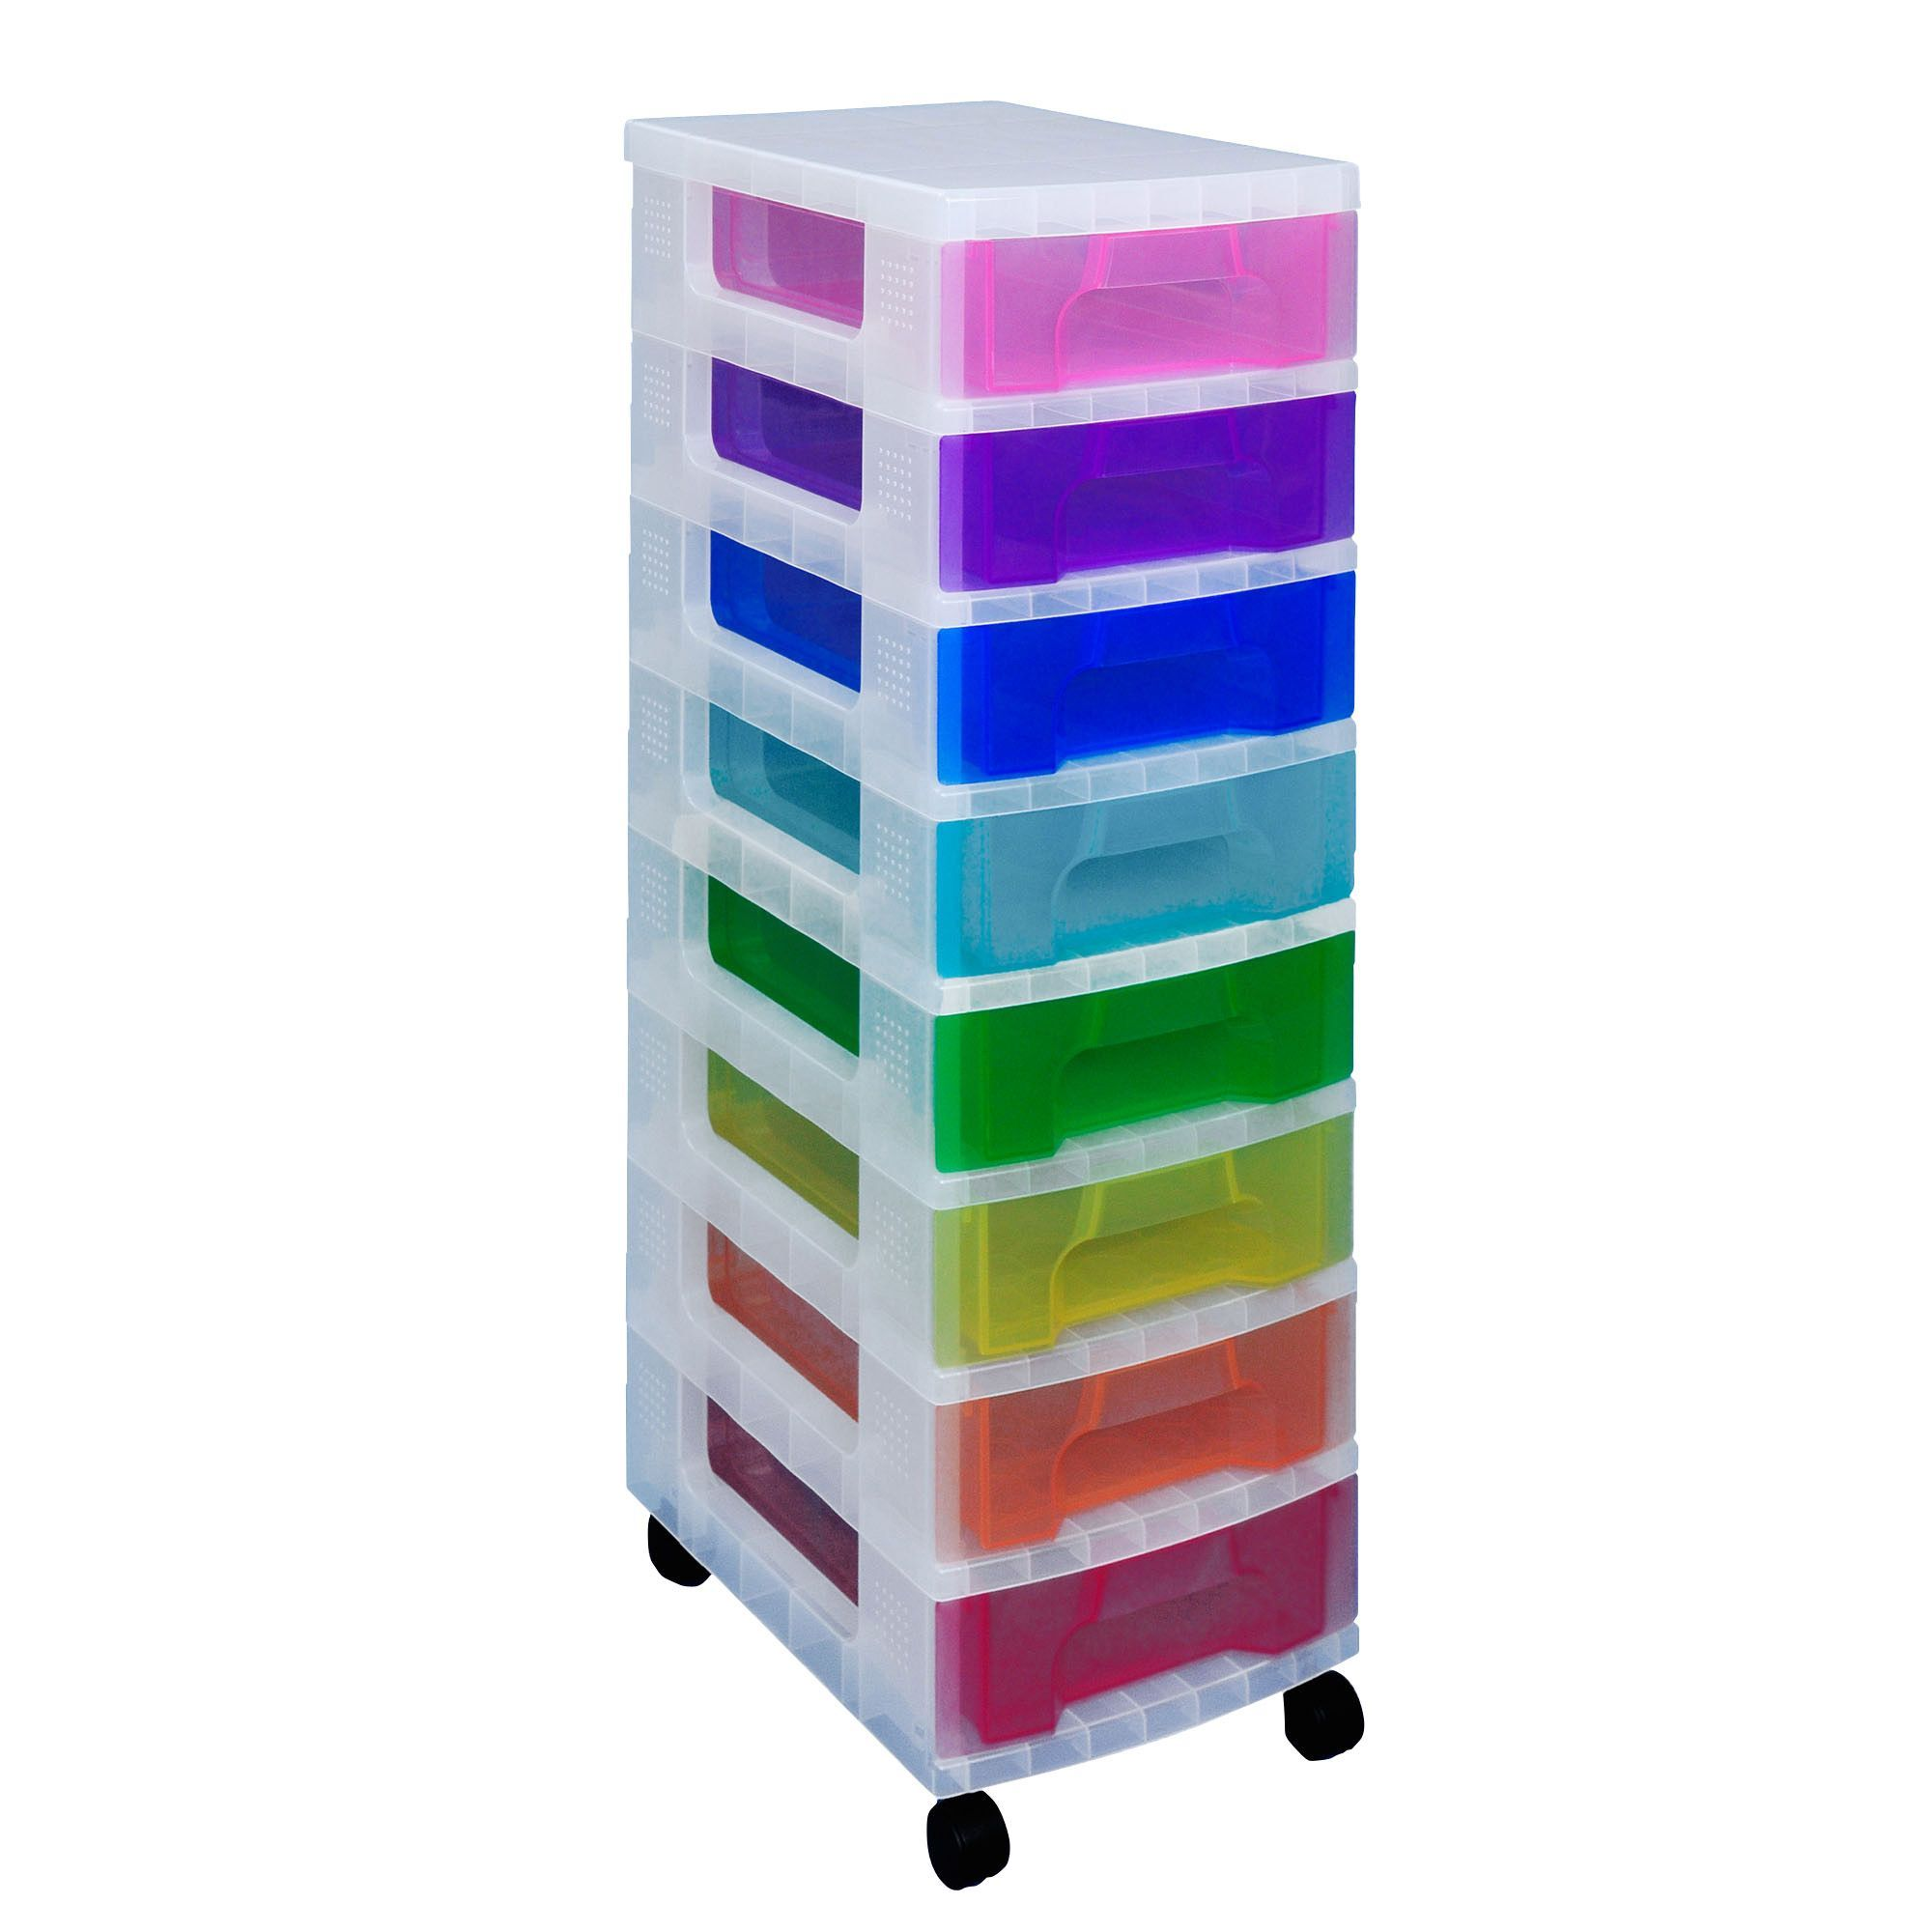 co dp k outdoors plastic tower unit uk large wheels in made chest garden drawers amazon storage cream drawer u with